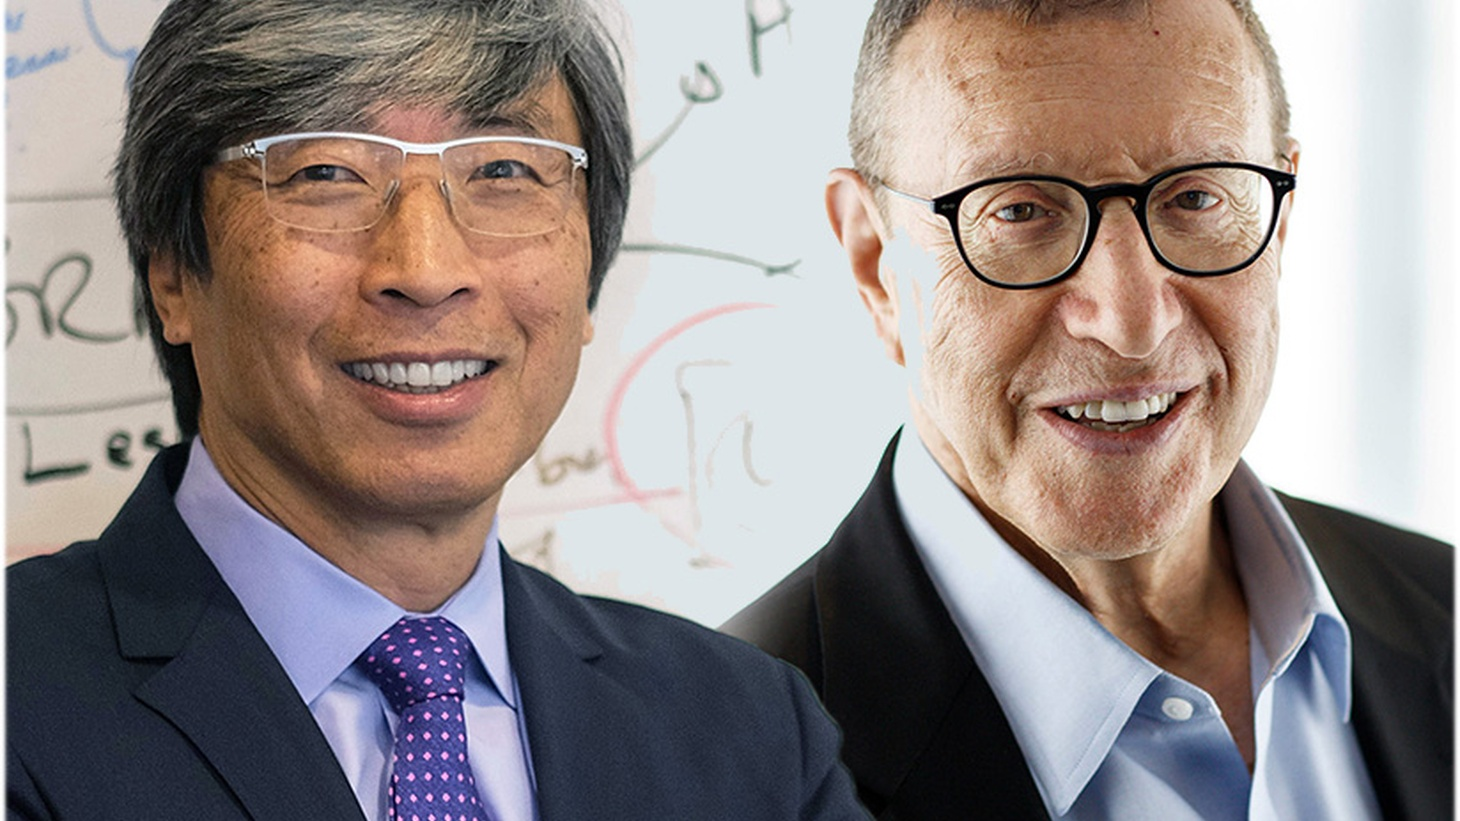 Local biotech billionaire Patrick Soon-Shiong paid $500 million for the Times, along with the San Diego Union Tribune and a few other local papers. He quickly hired Norman Pearlstine as the new executive editor for the Times.